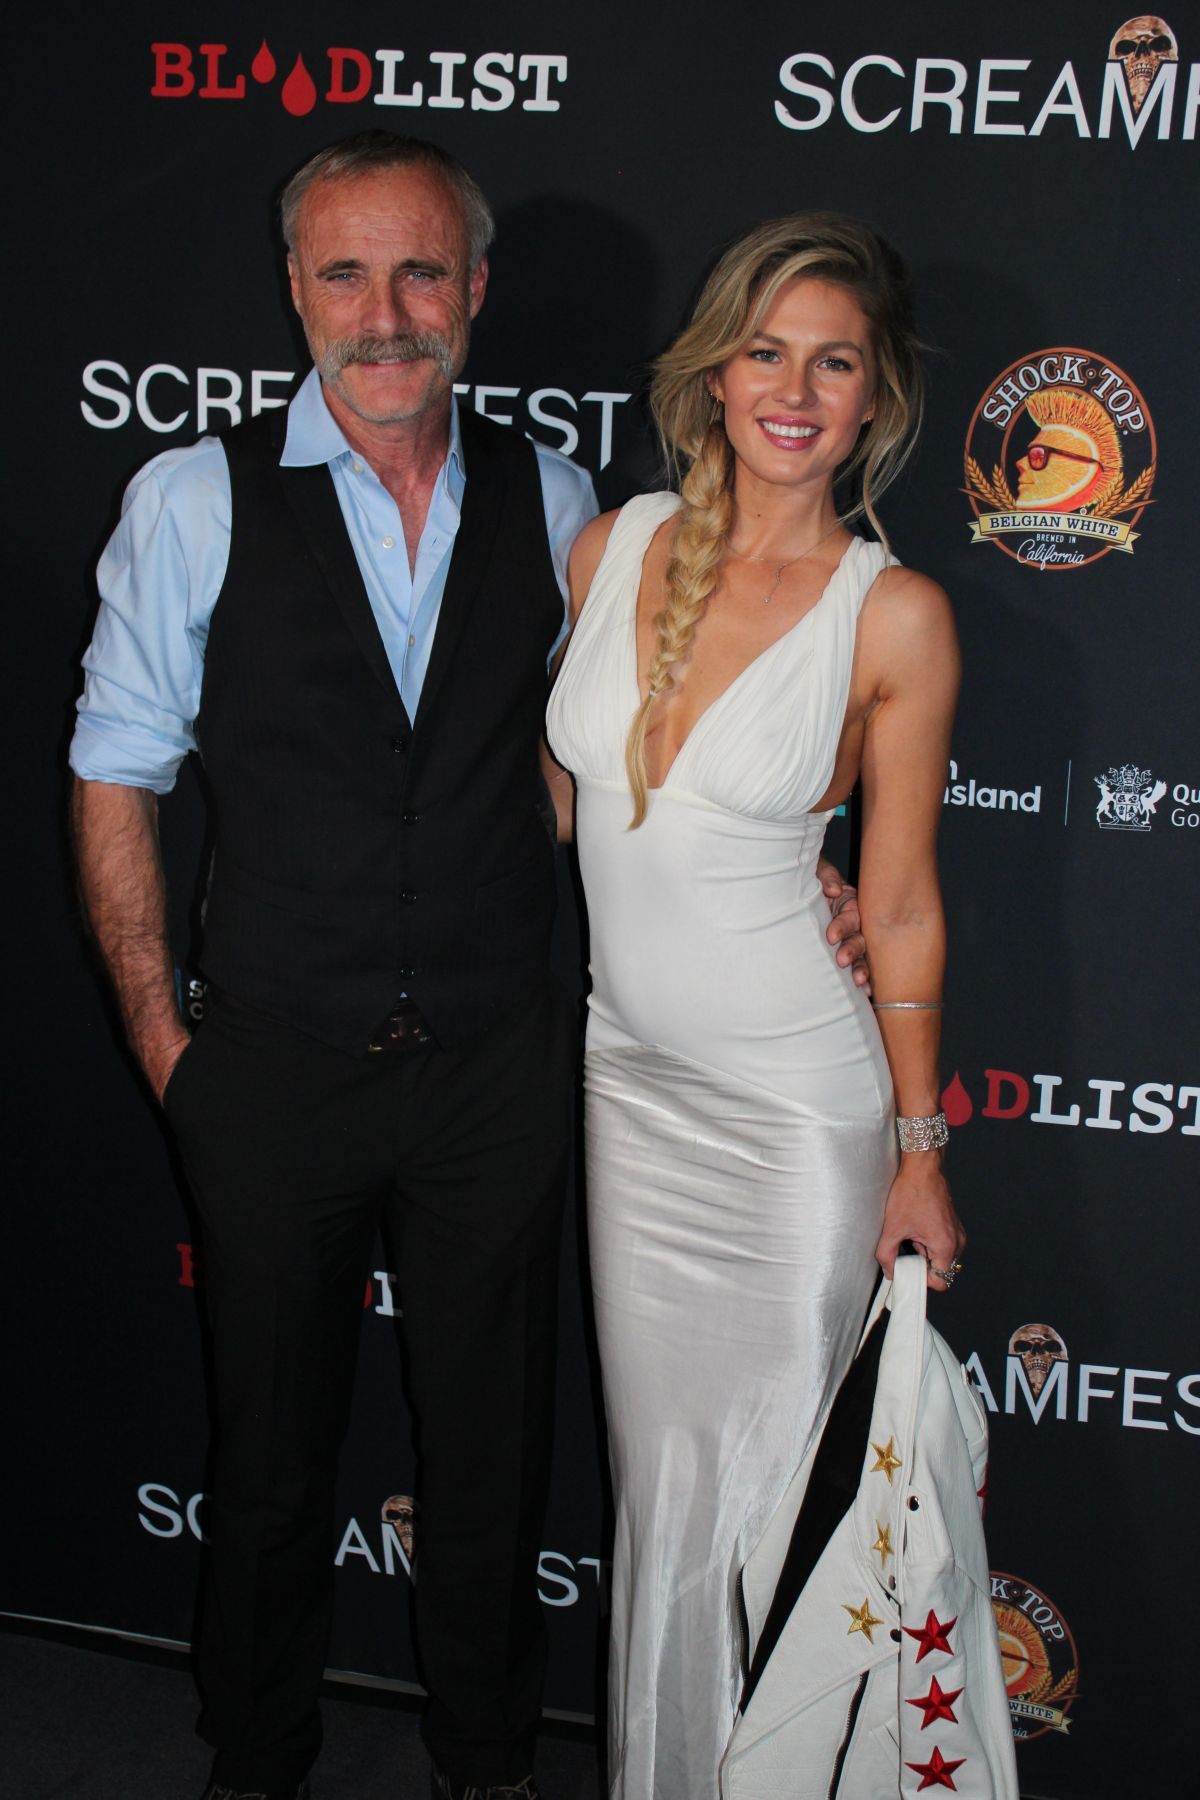 CAITLIN MANLEY at Tragedy Girls Premiere at Screamfest